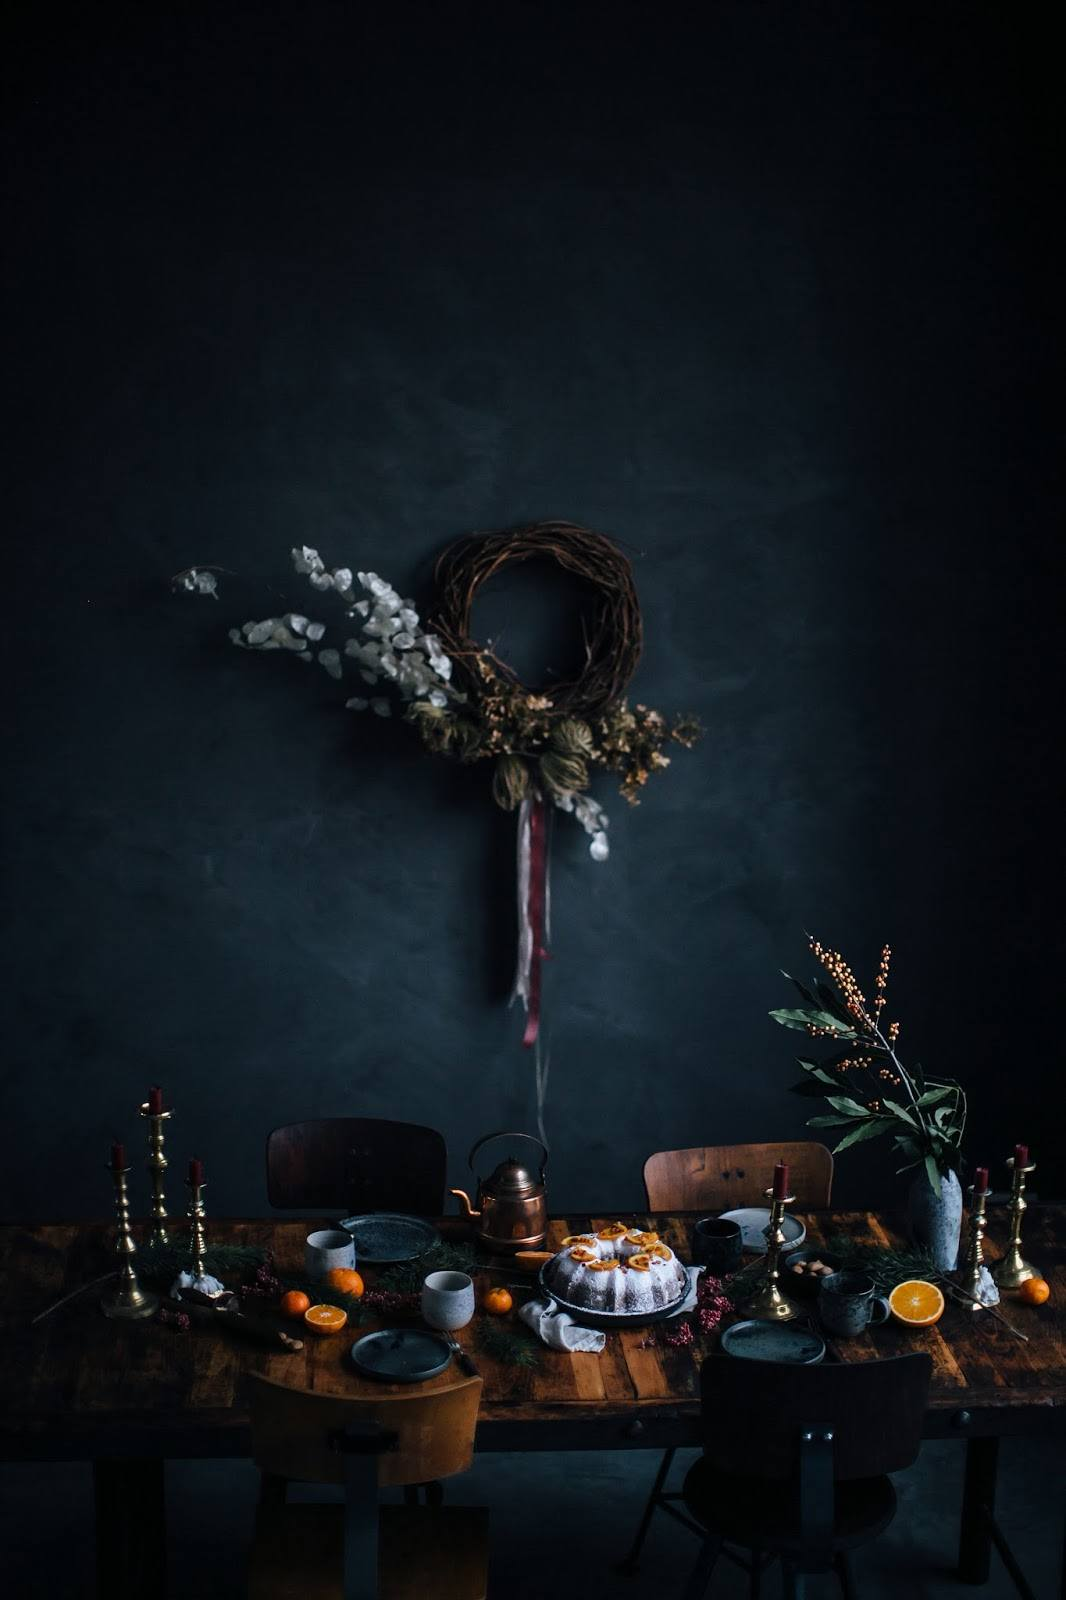 Embrace the dark, moody holiday decor